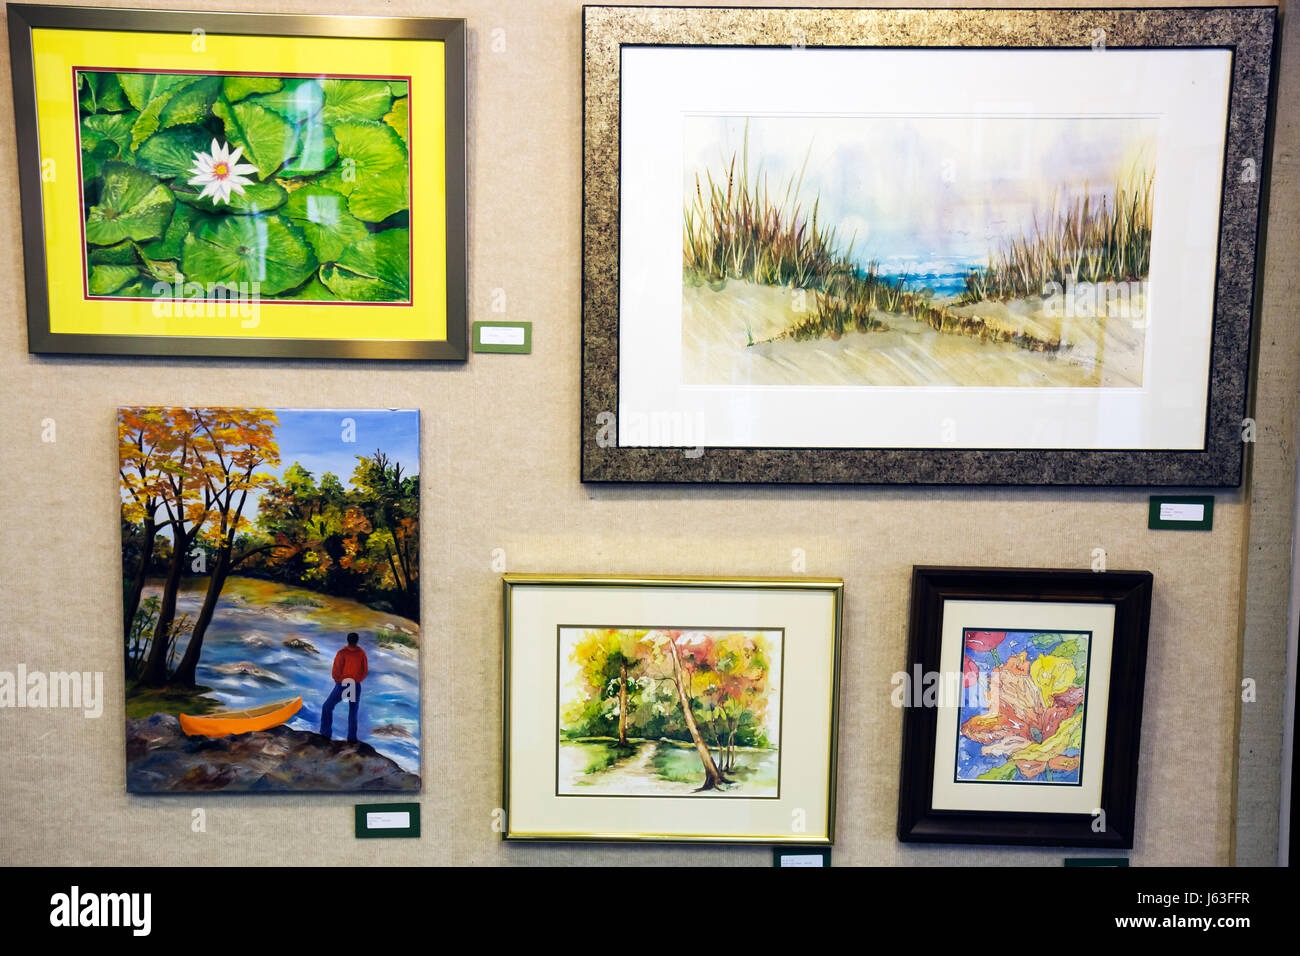 Watercolor Gallery Stockfotos & Watercolor Gallery Bilder - Alamy